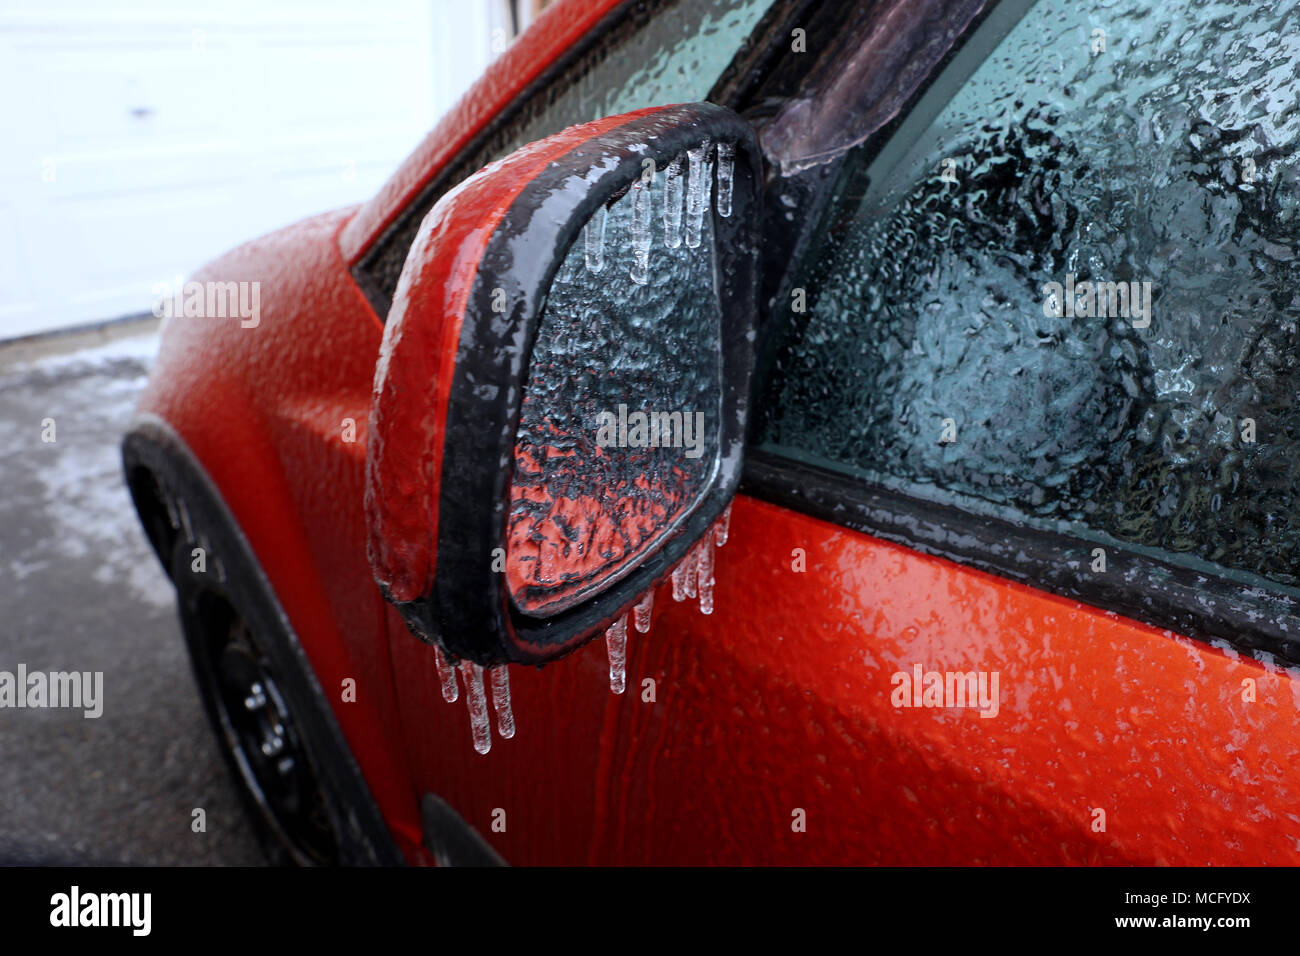 Montreal,Canada,16,April,2018.Car mirror covered with ice and sleet. Credit:Mario Beauregard/Alamy Live News - Stock Image